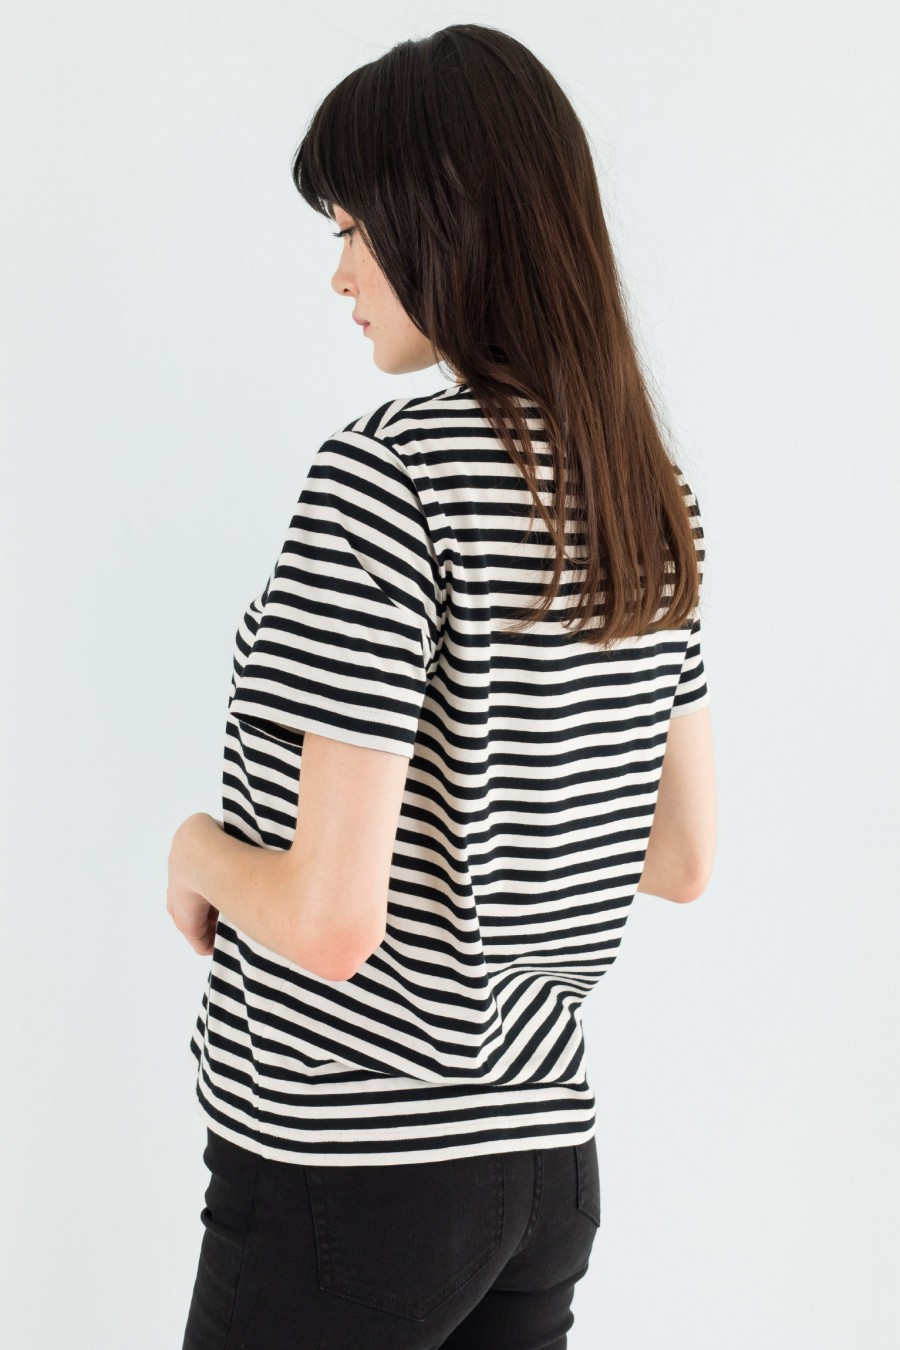 Short-sleeved black and white t-shirt